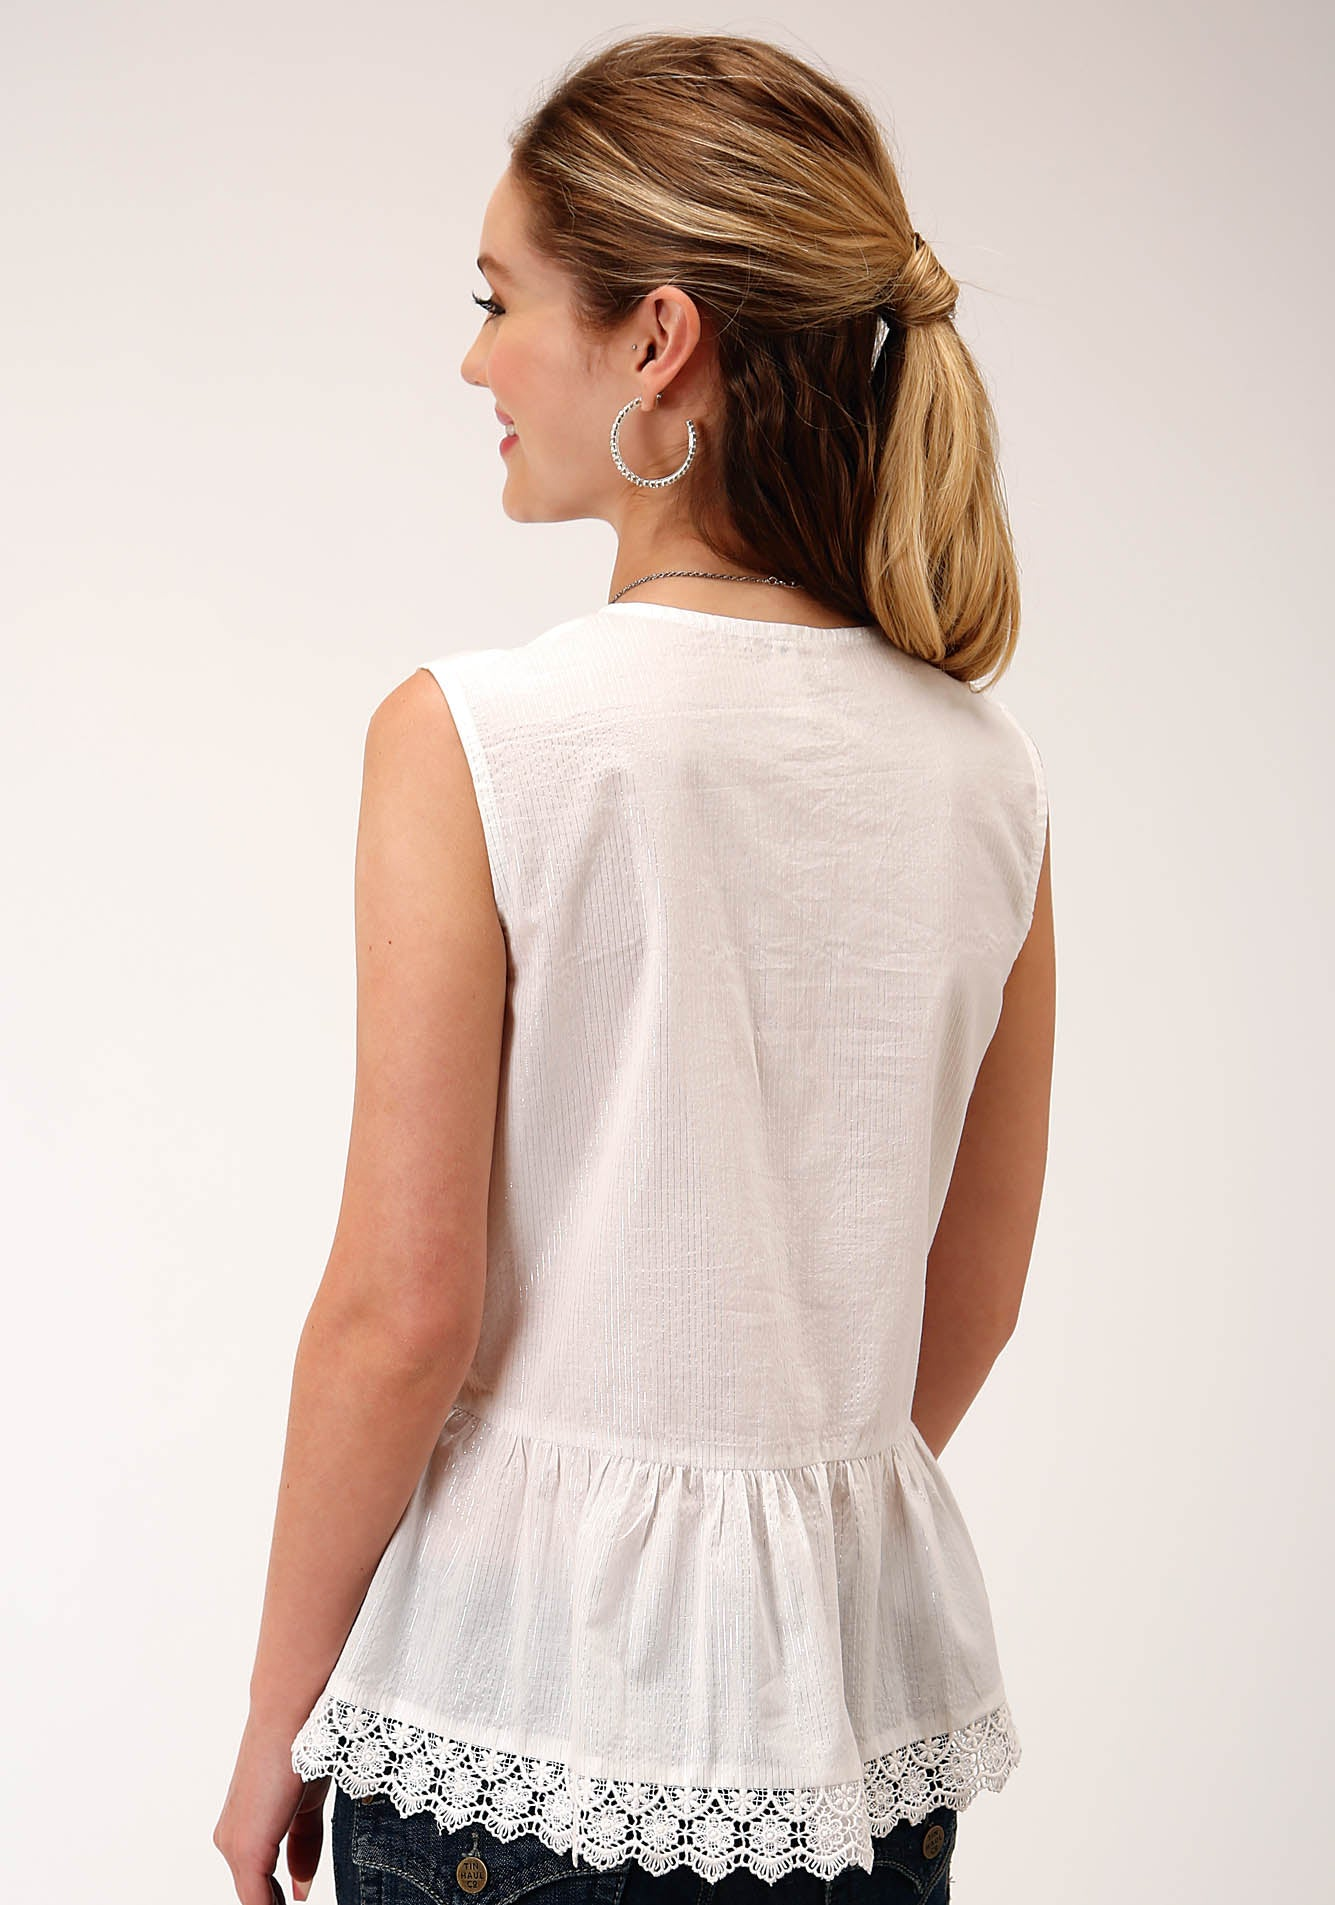 ROPER WOMENS WHITE 00237 COTTON W/SILVER LUREX SLVLS TOP FIVE STAR COLLECTION- SUMMER II SLEEVELESS